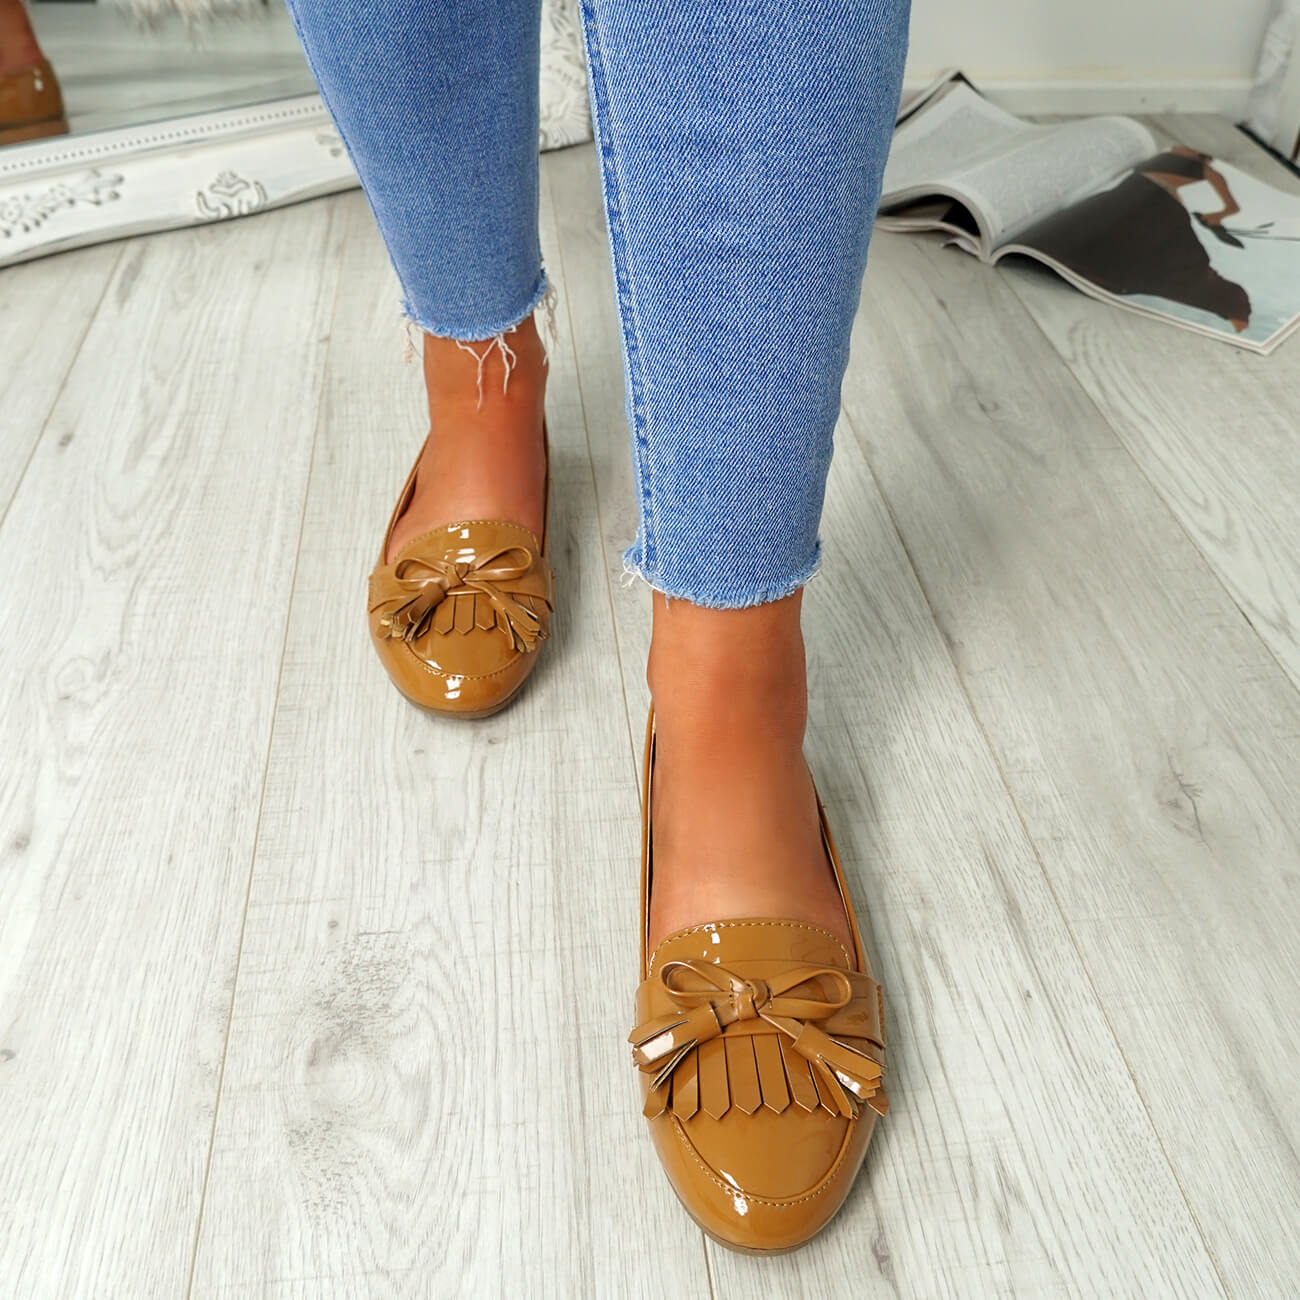 WOMENS-LADIES-FRINGE-BALLERINAS-SLIP-ON-FLAT-DOLLY-PUMPS-CASUAL-SMART-SHOES-SIZE thumbnail 12